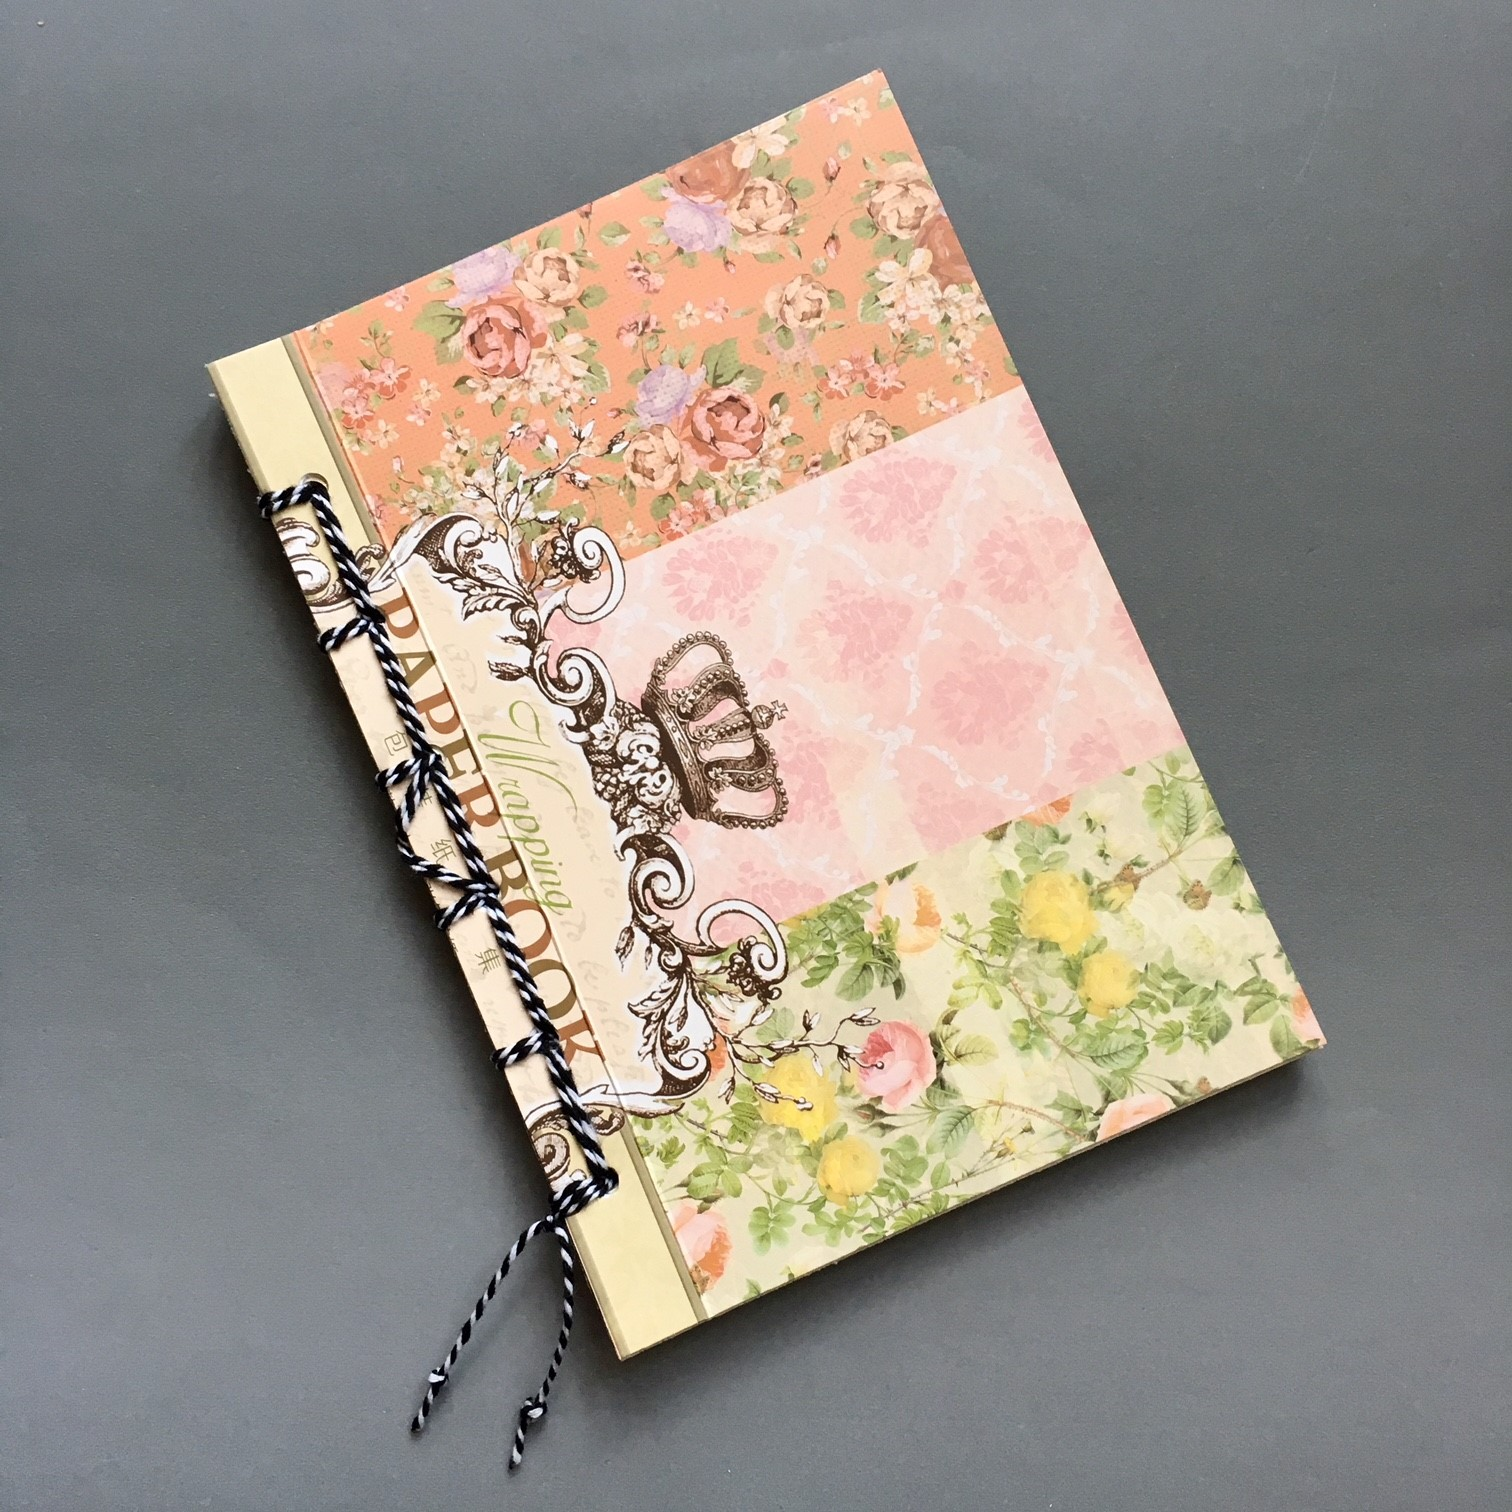 DIY smash journal with easy bookbinding